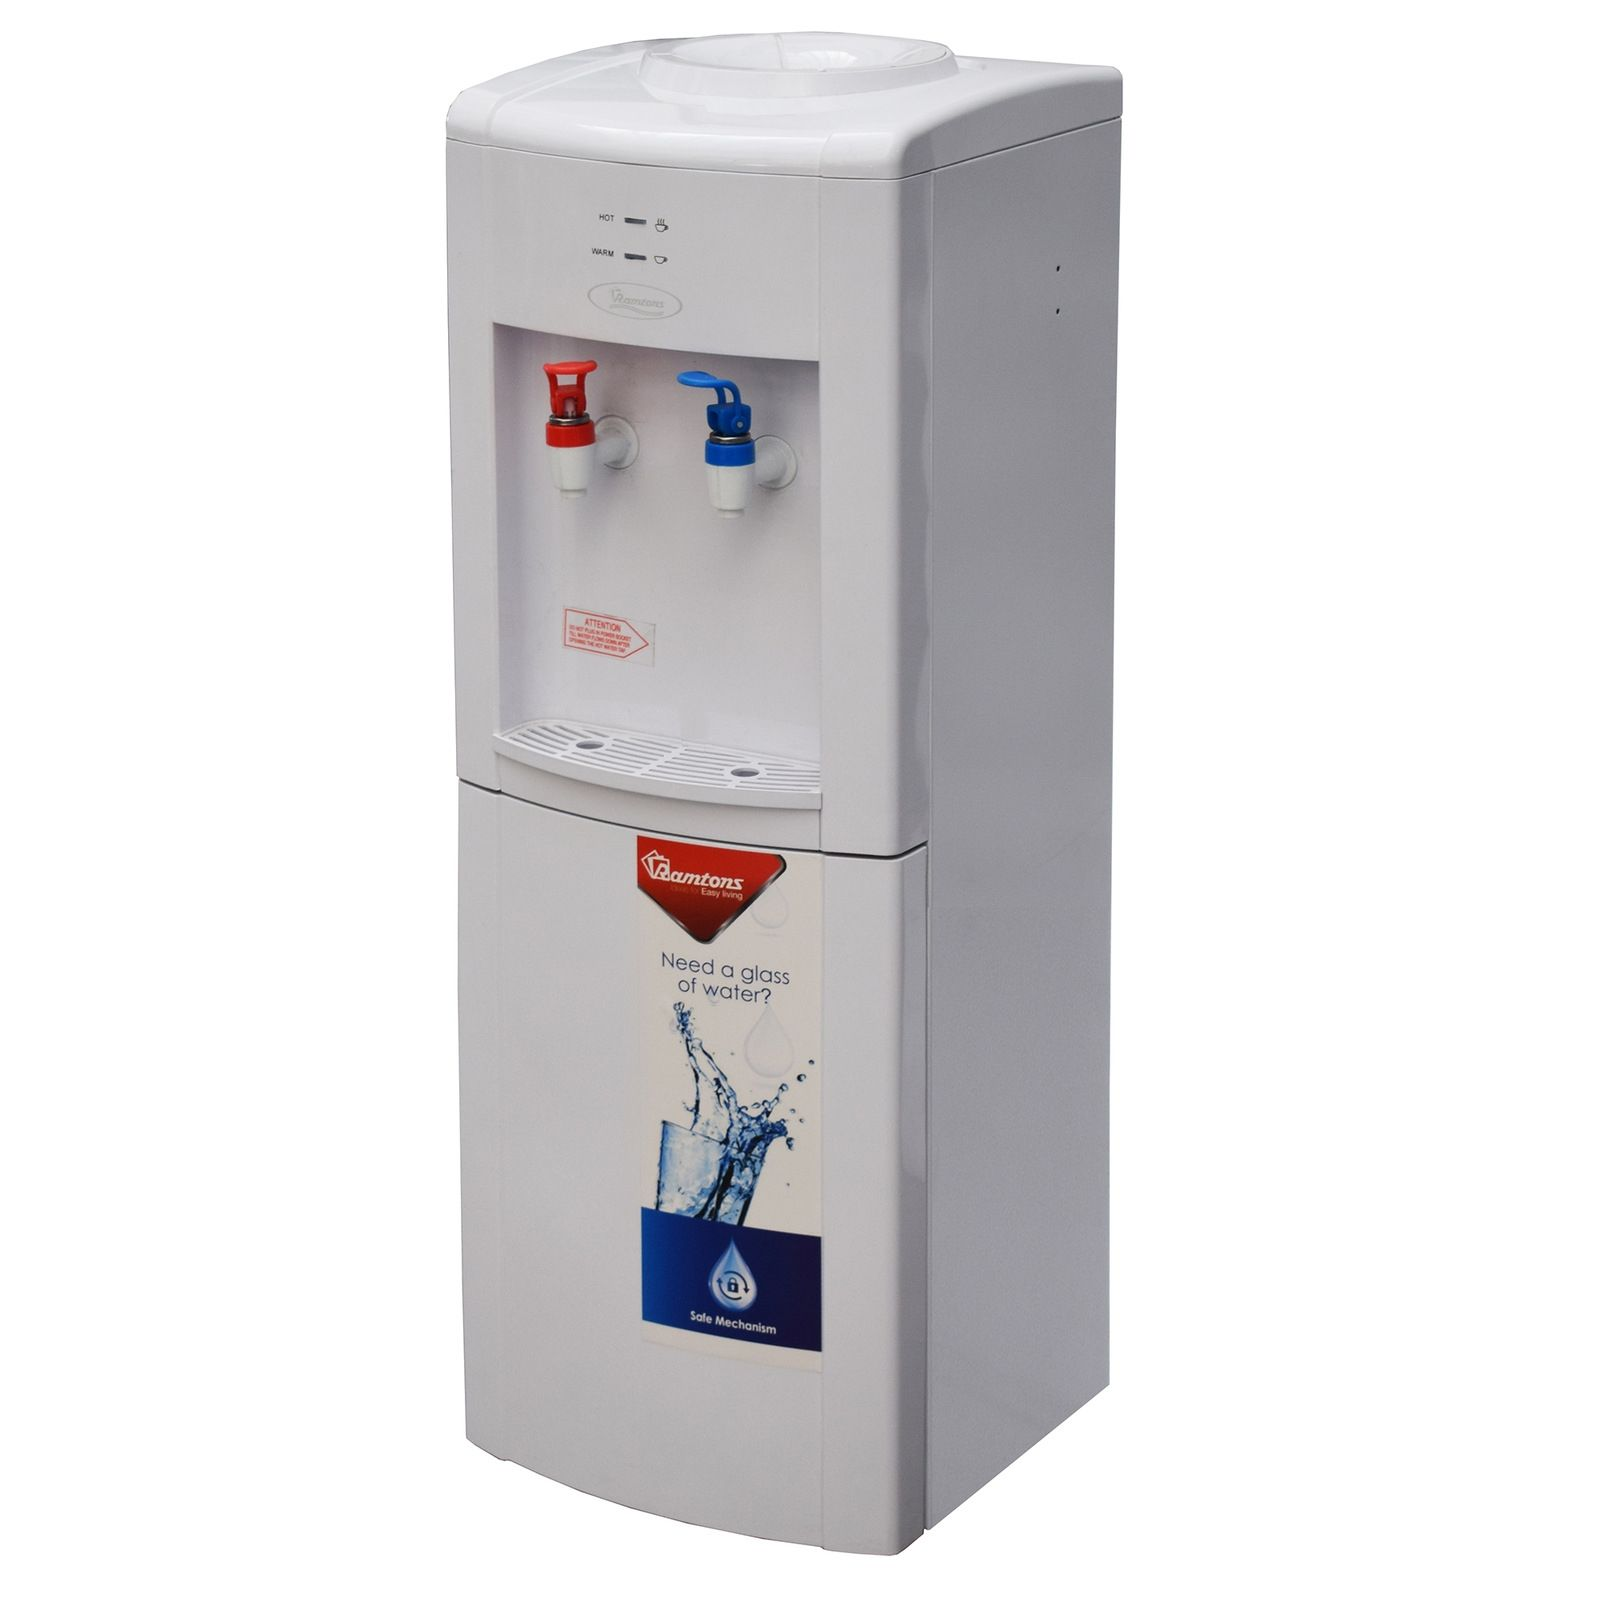 kitchen water dispenser faucets at costco ramtons other small appliances buy online jumia kenya